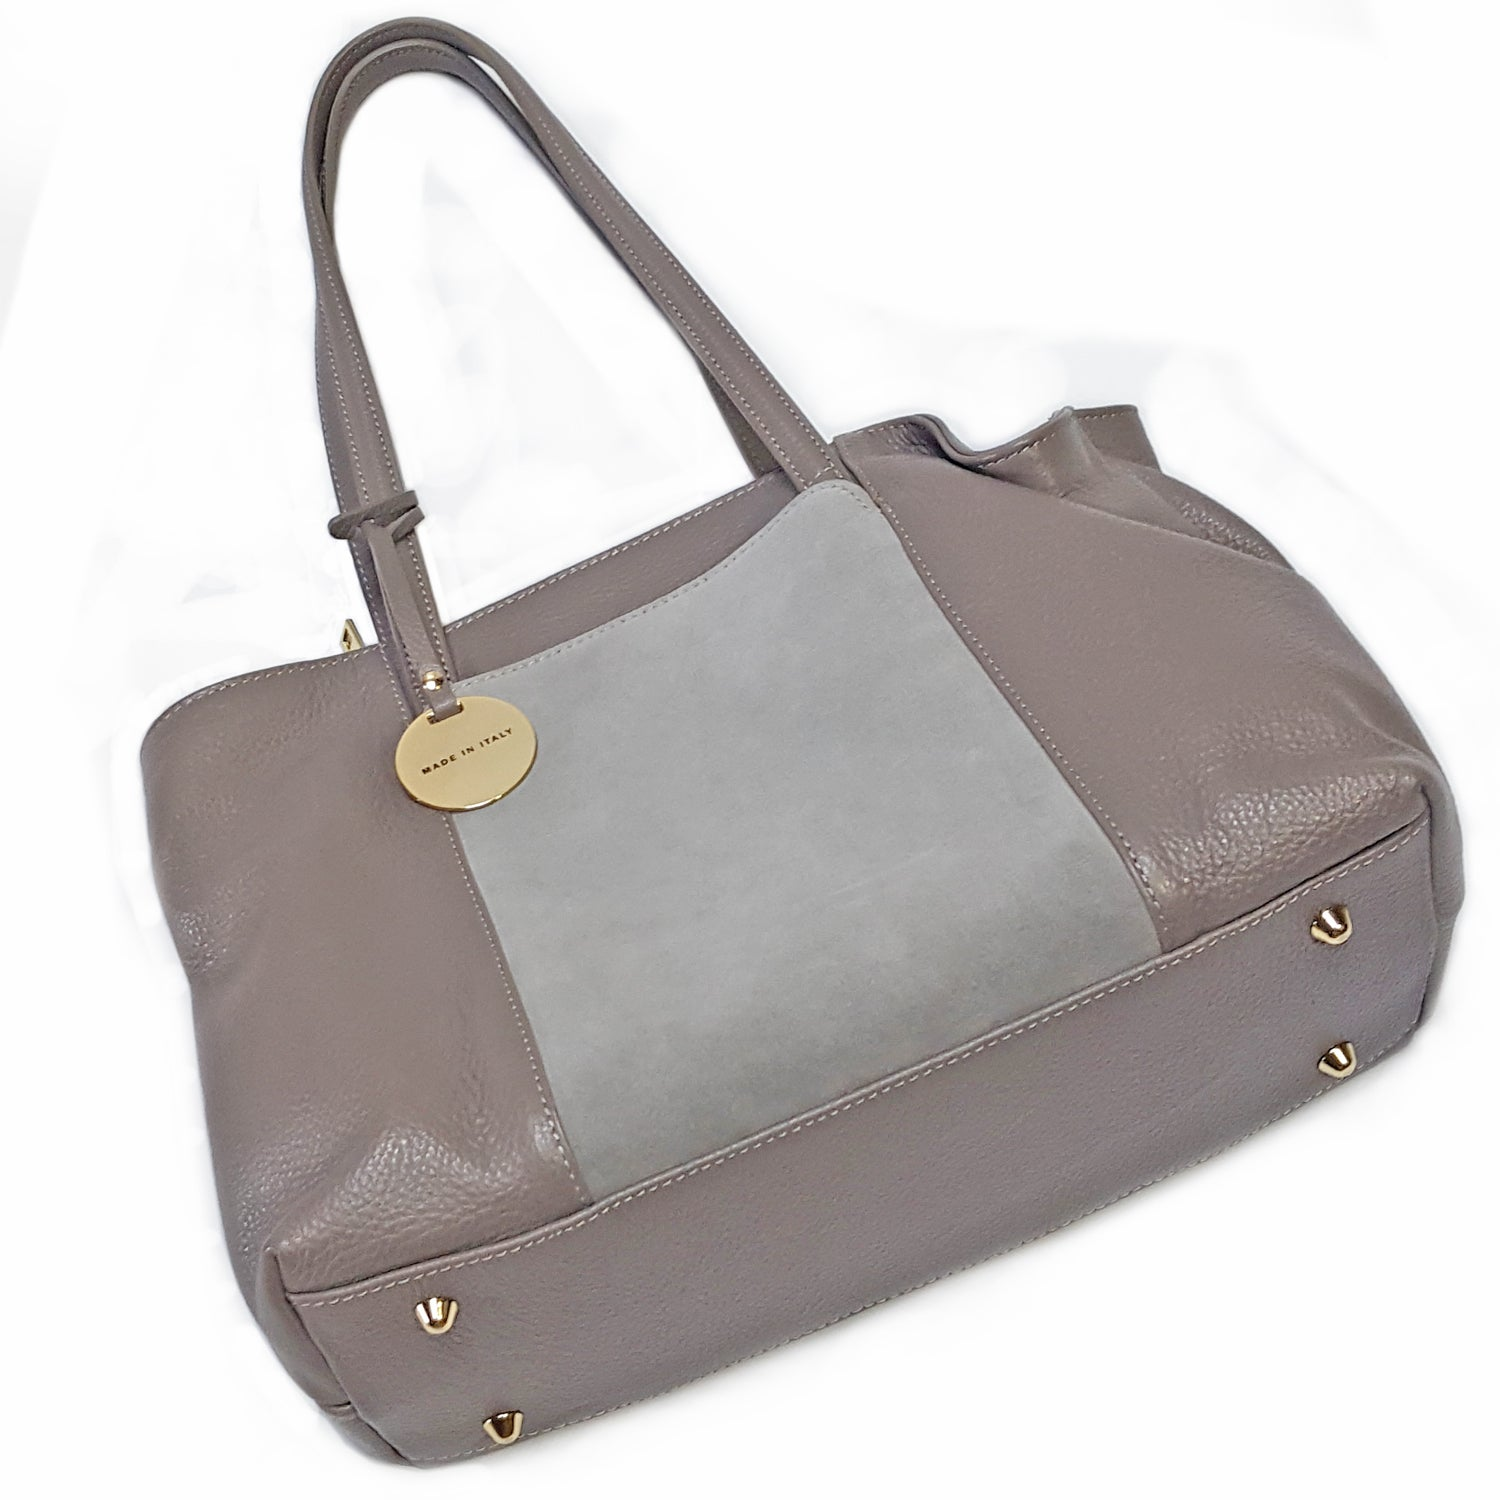 ONE & ONLY Mid Size Tote Bag w/Suede side pocket (B199)